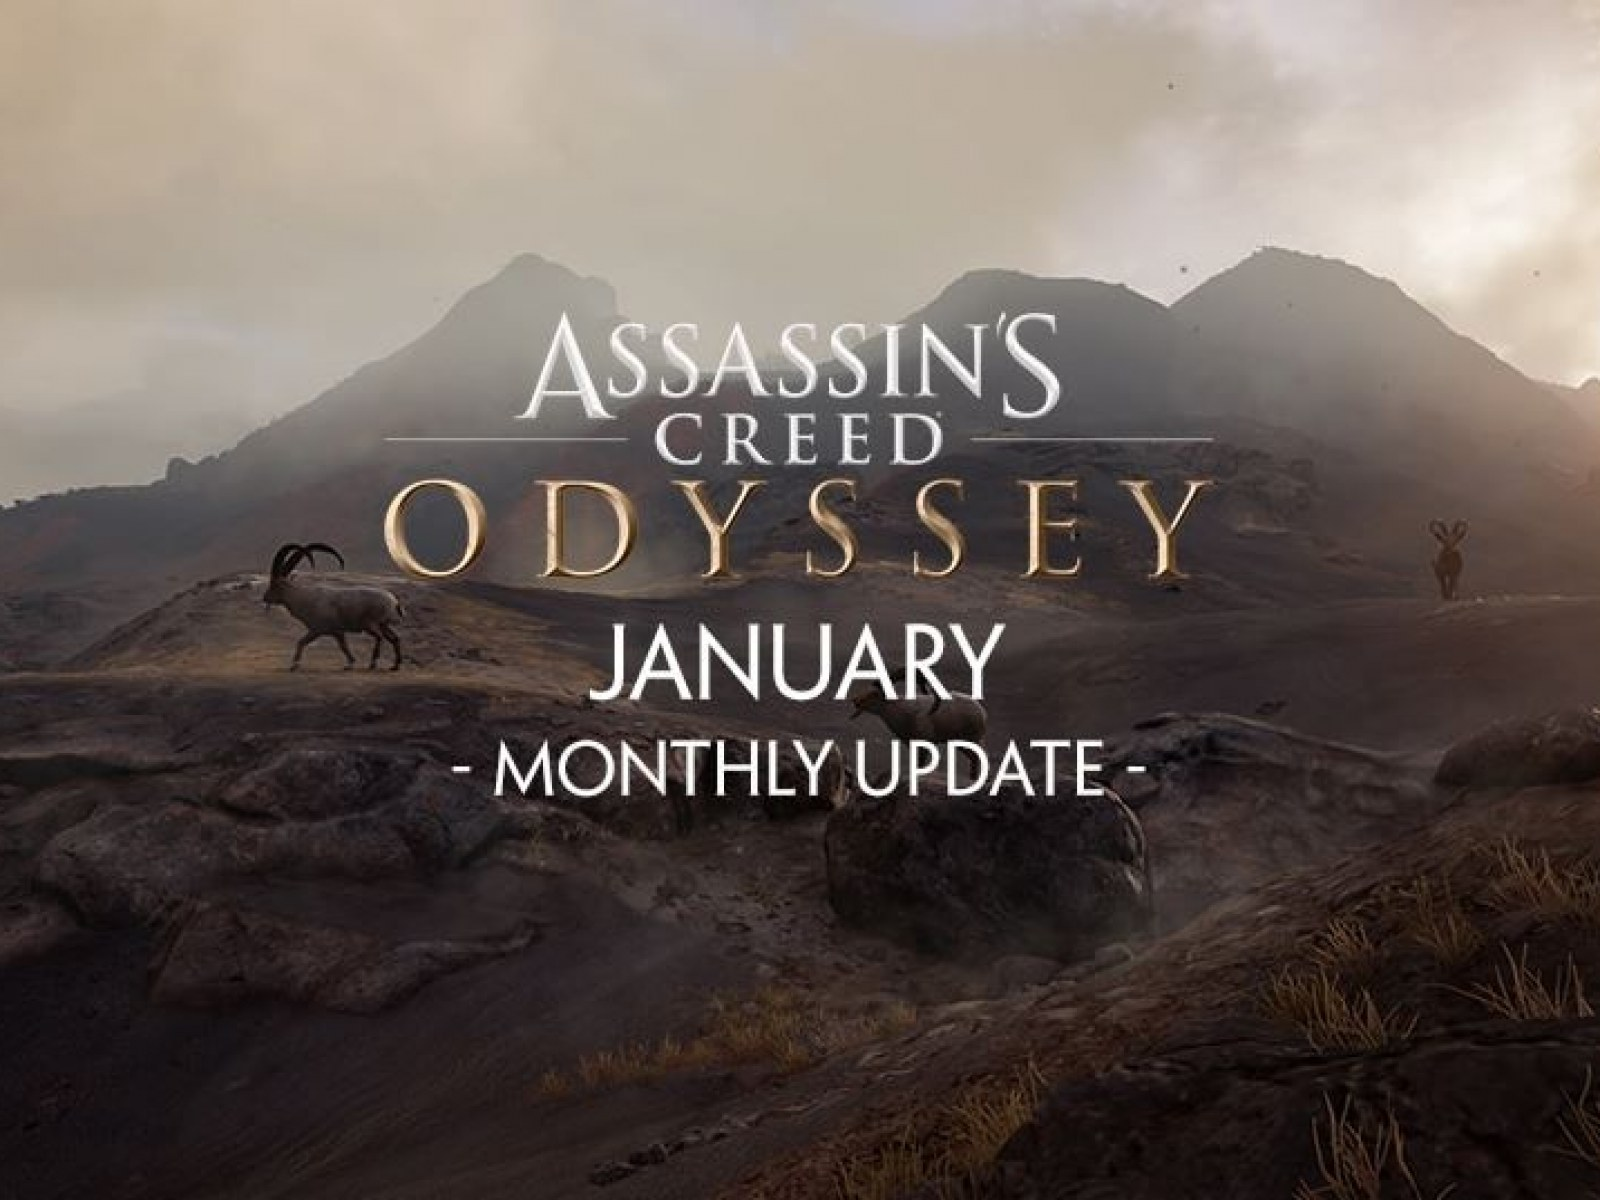 Assassin's Creed Odyssey' January Update: New Quests, Items, Rewards